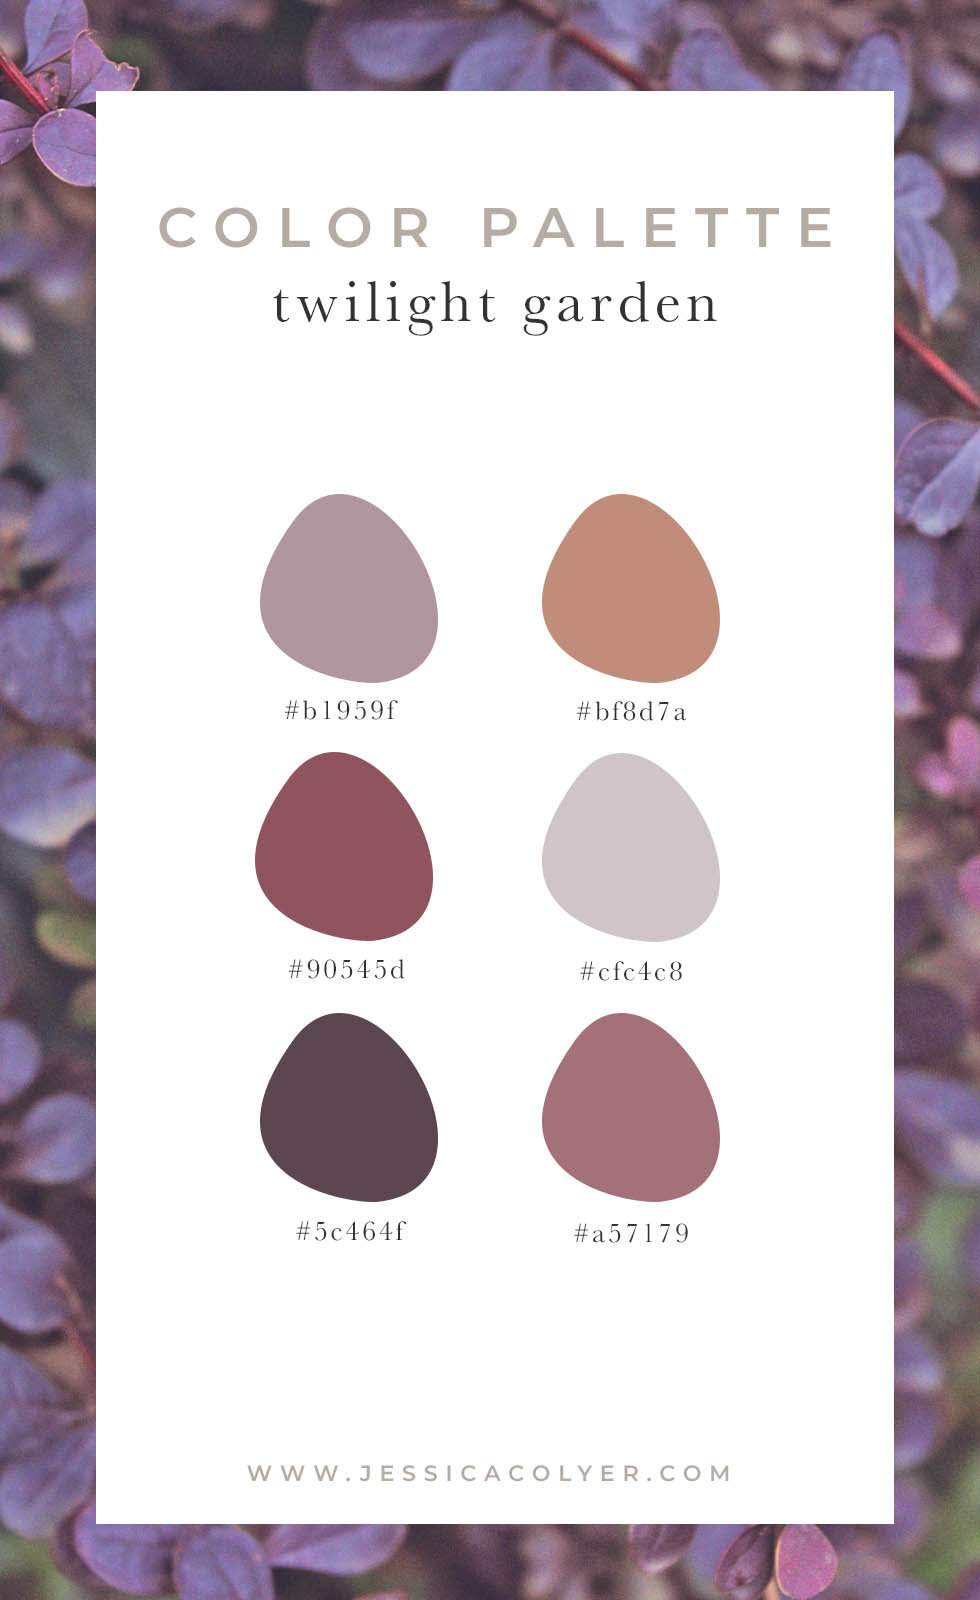 Twilight Garden Color Palette | Jessica Colyer